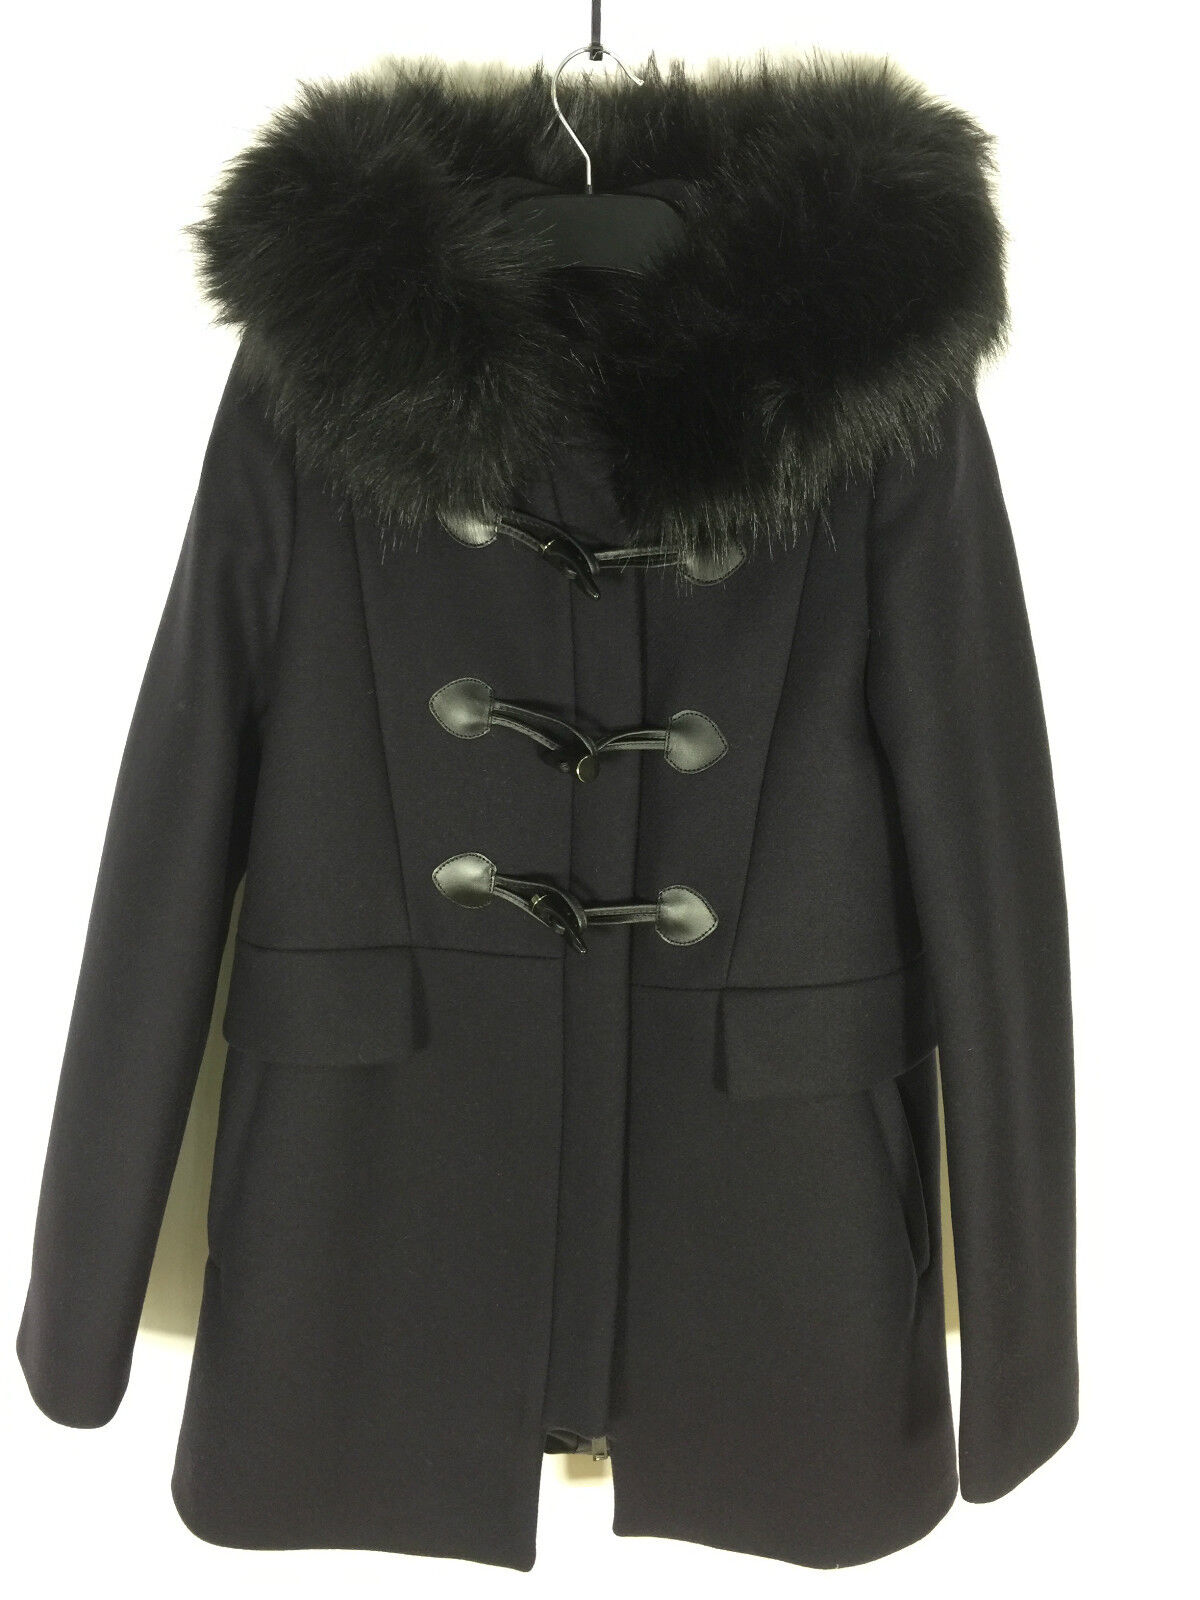 6a415ed5 Details about ZARA NAVY BLUE DUFFLE COAT WITH FAUX FUR COLLAR SIZE SMALL  REF 7904 744